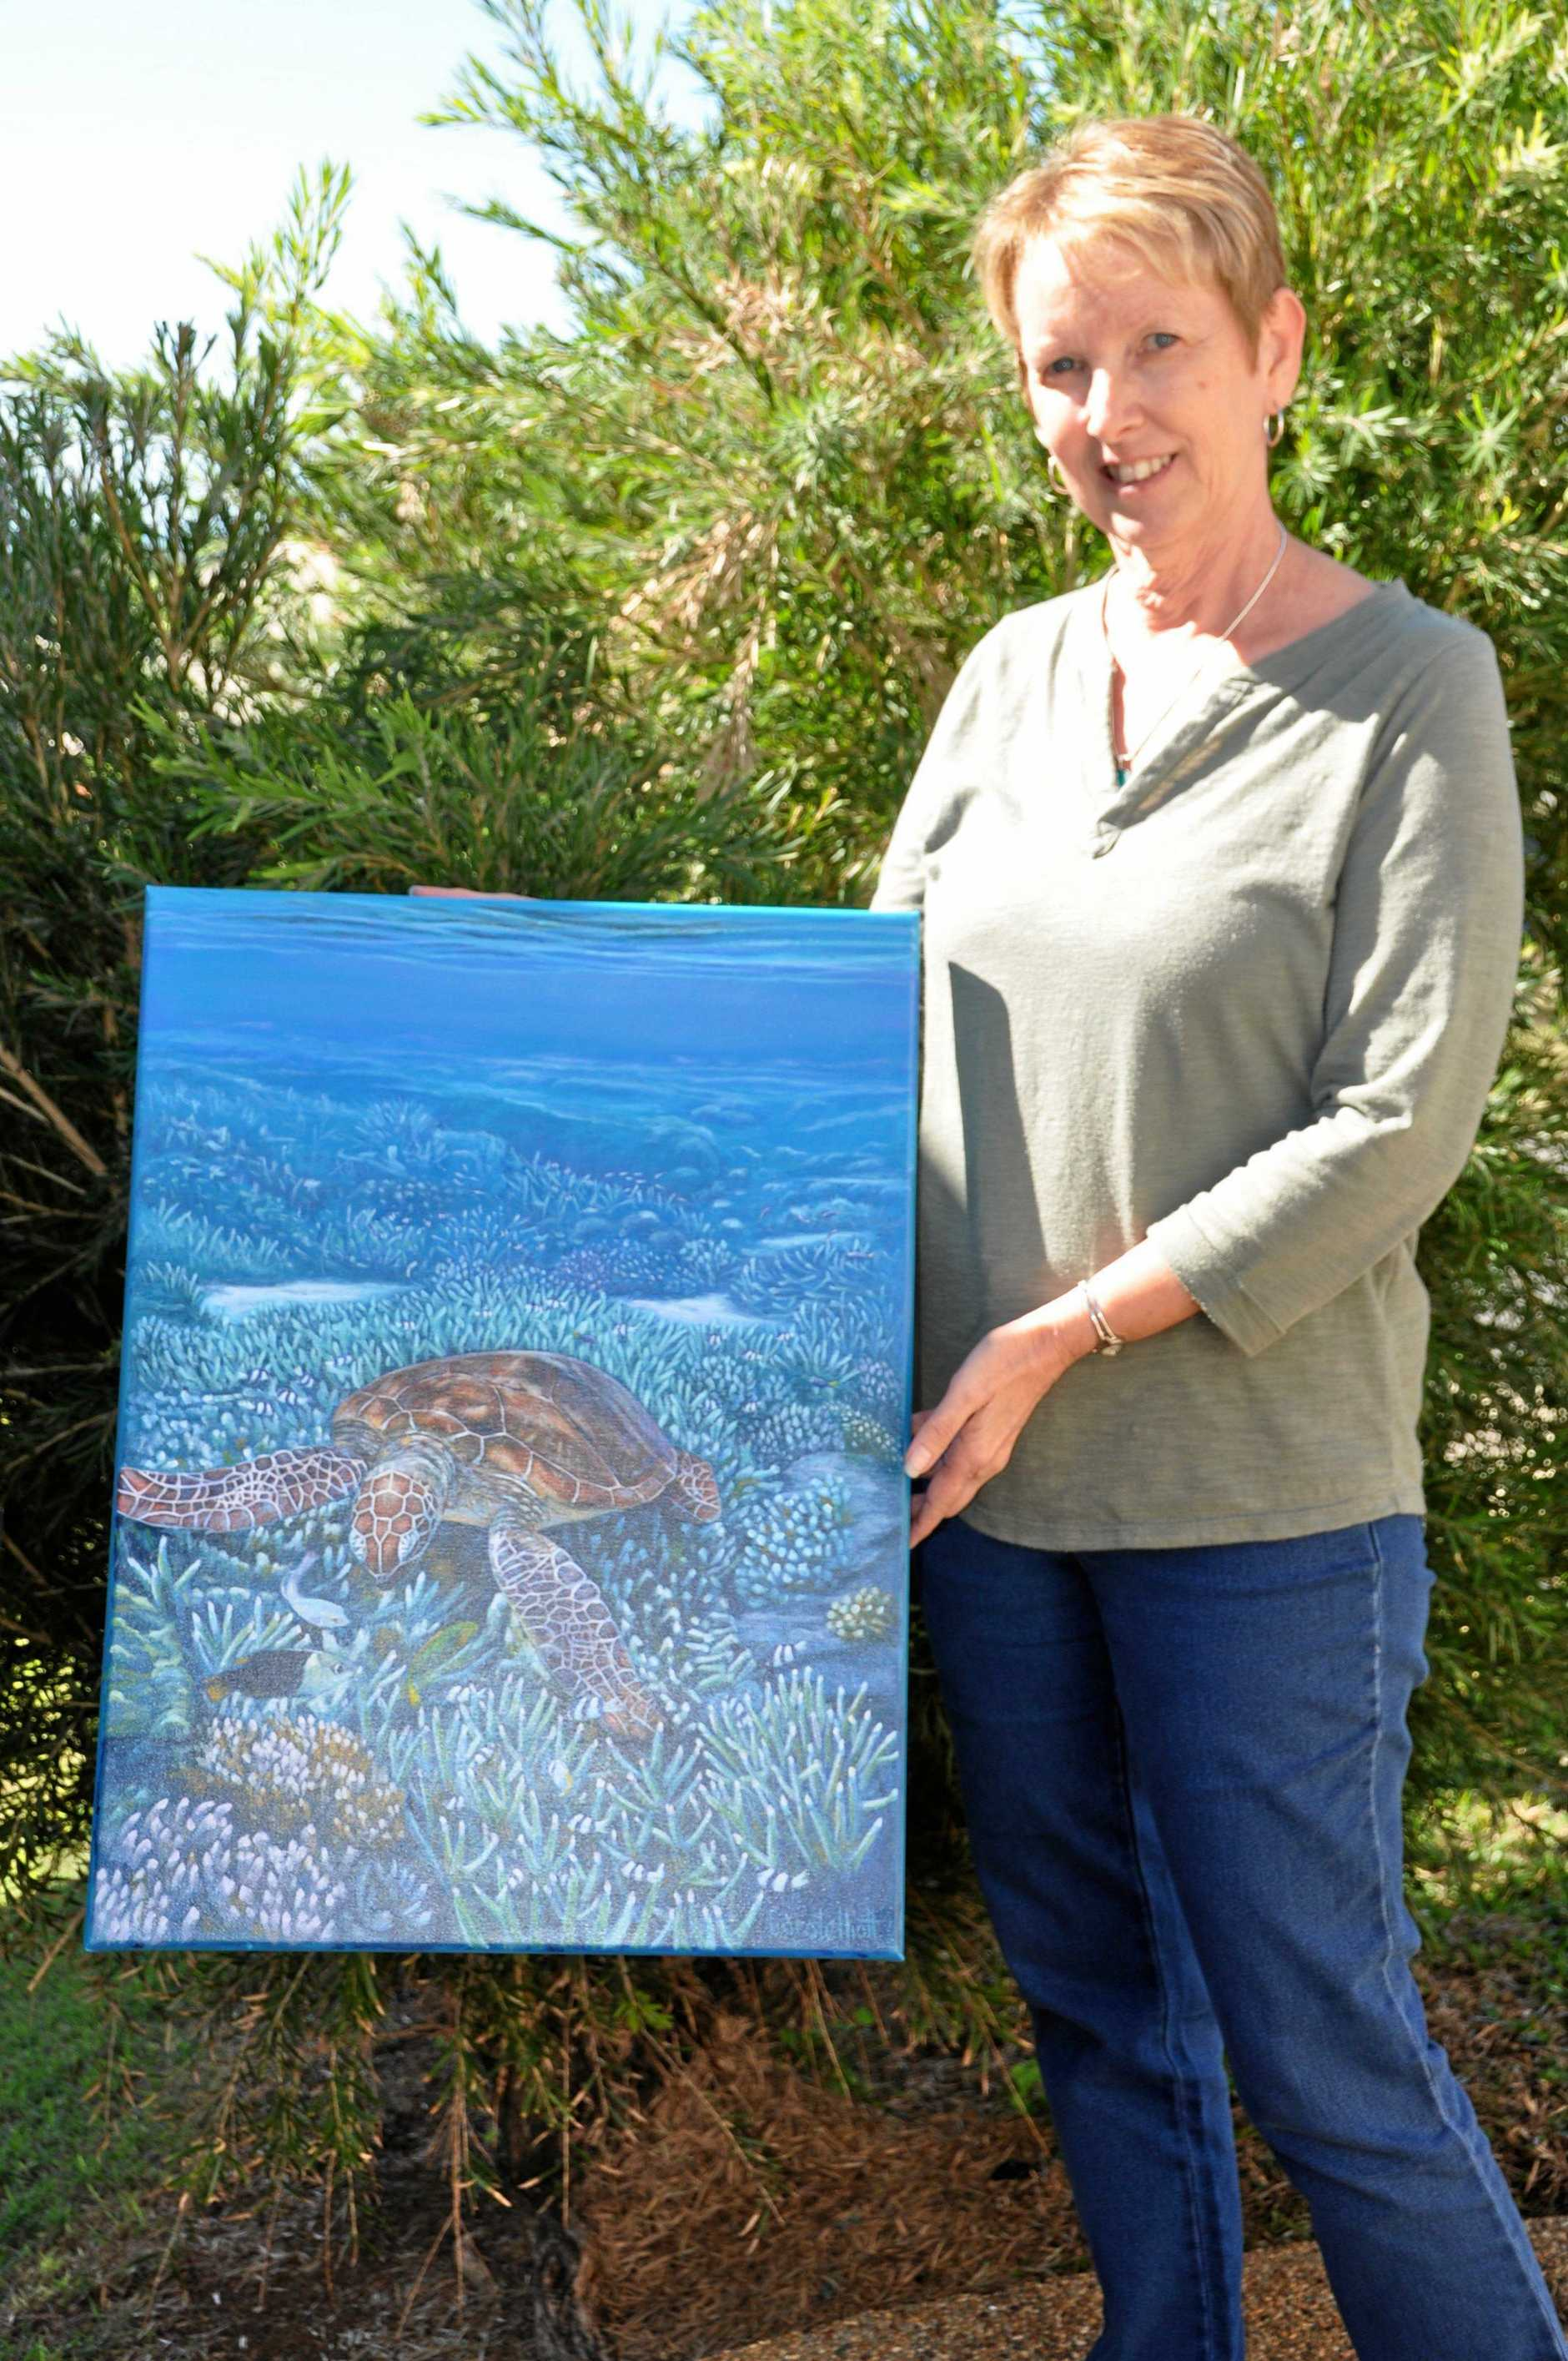 Carole Elliot is one of 10 Capricorn Coast Artists who will feature in this years Village Festival exhibition